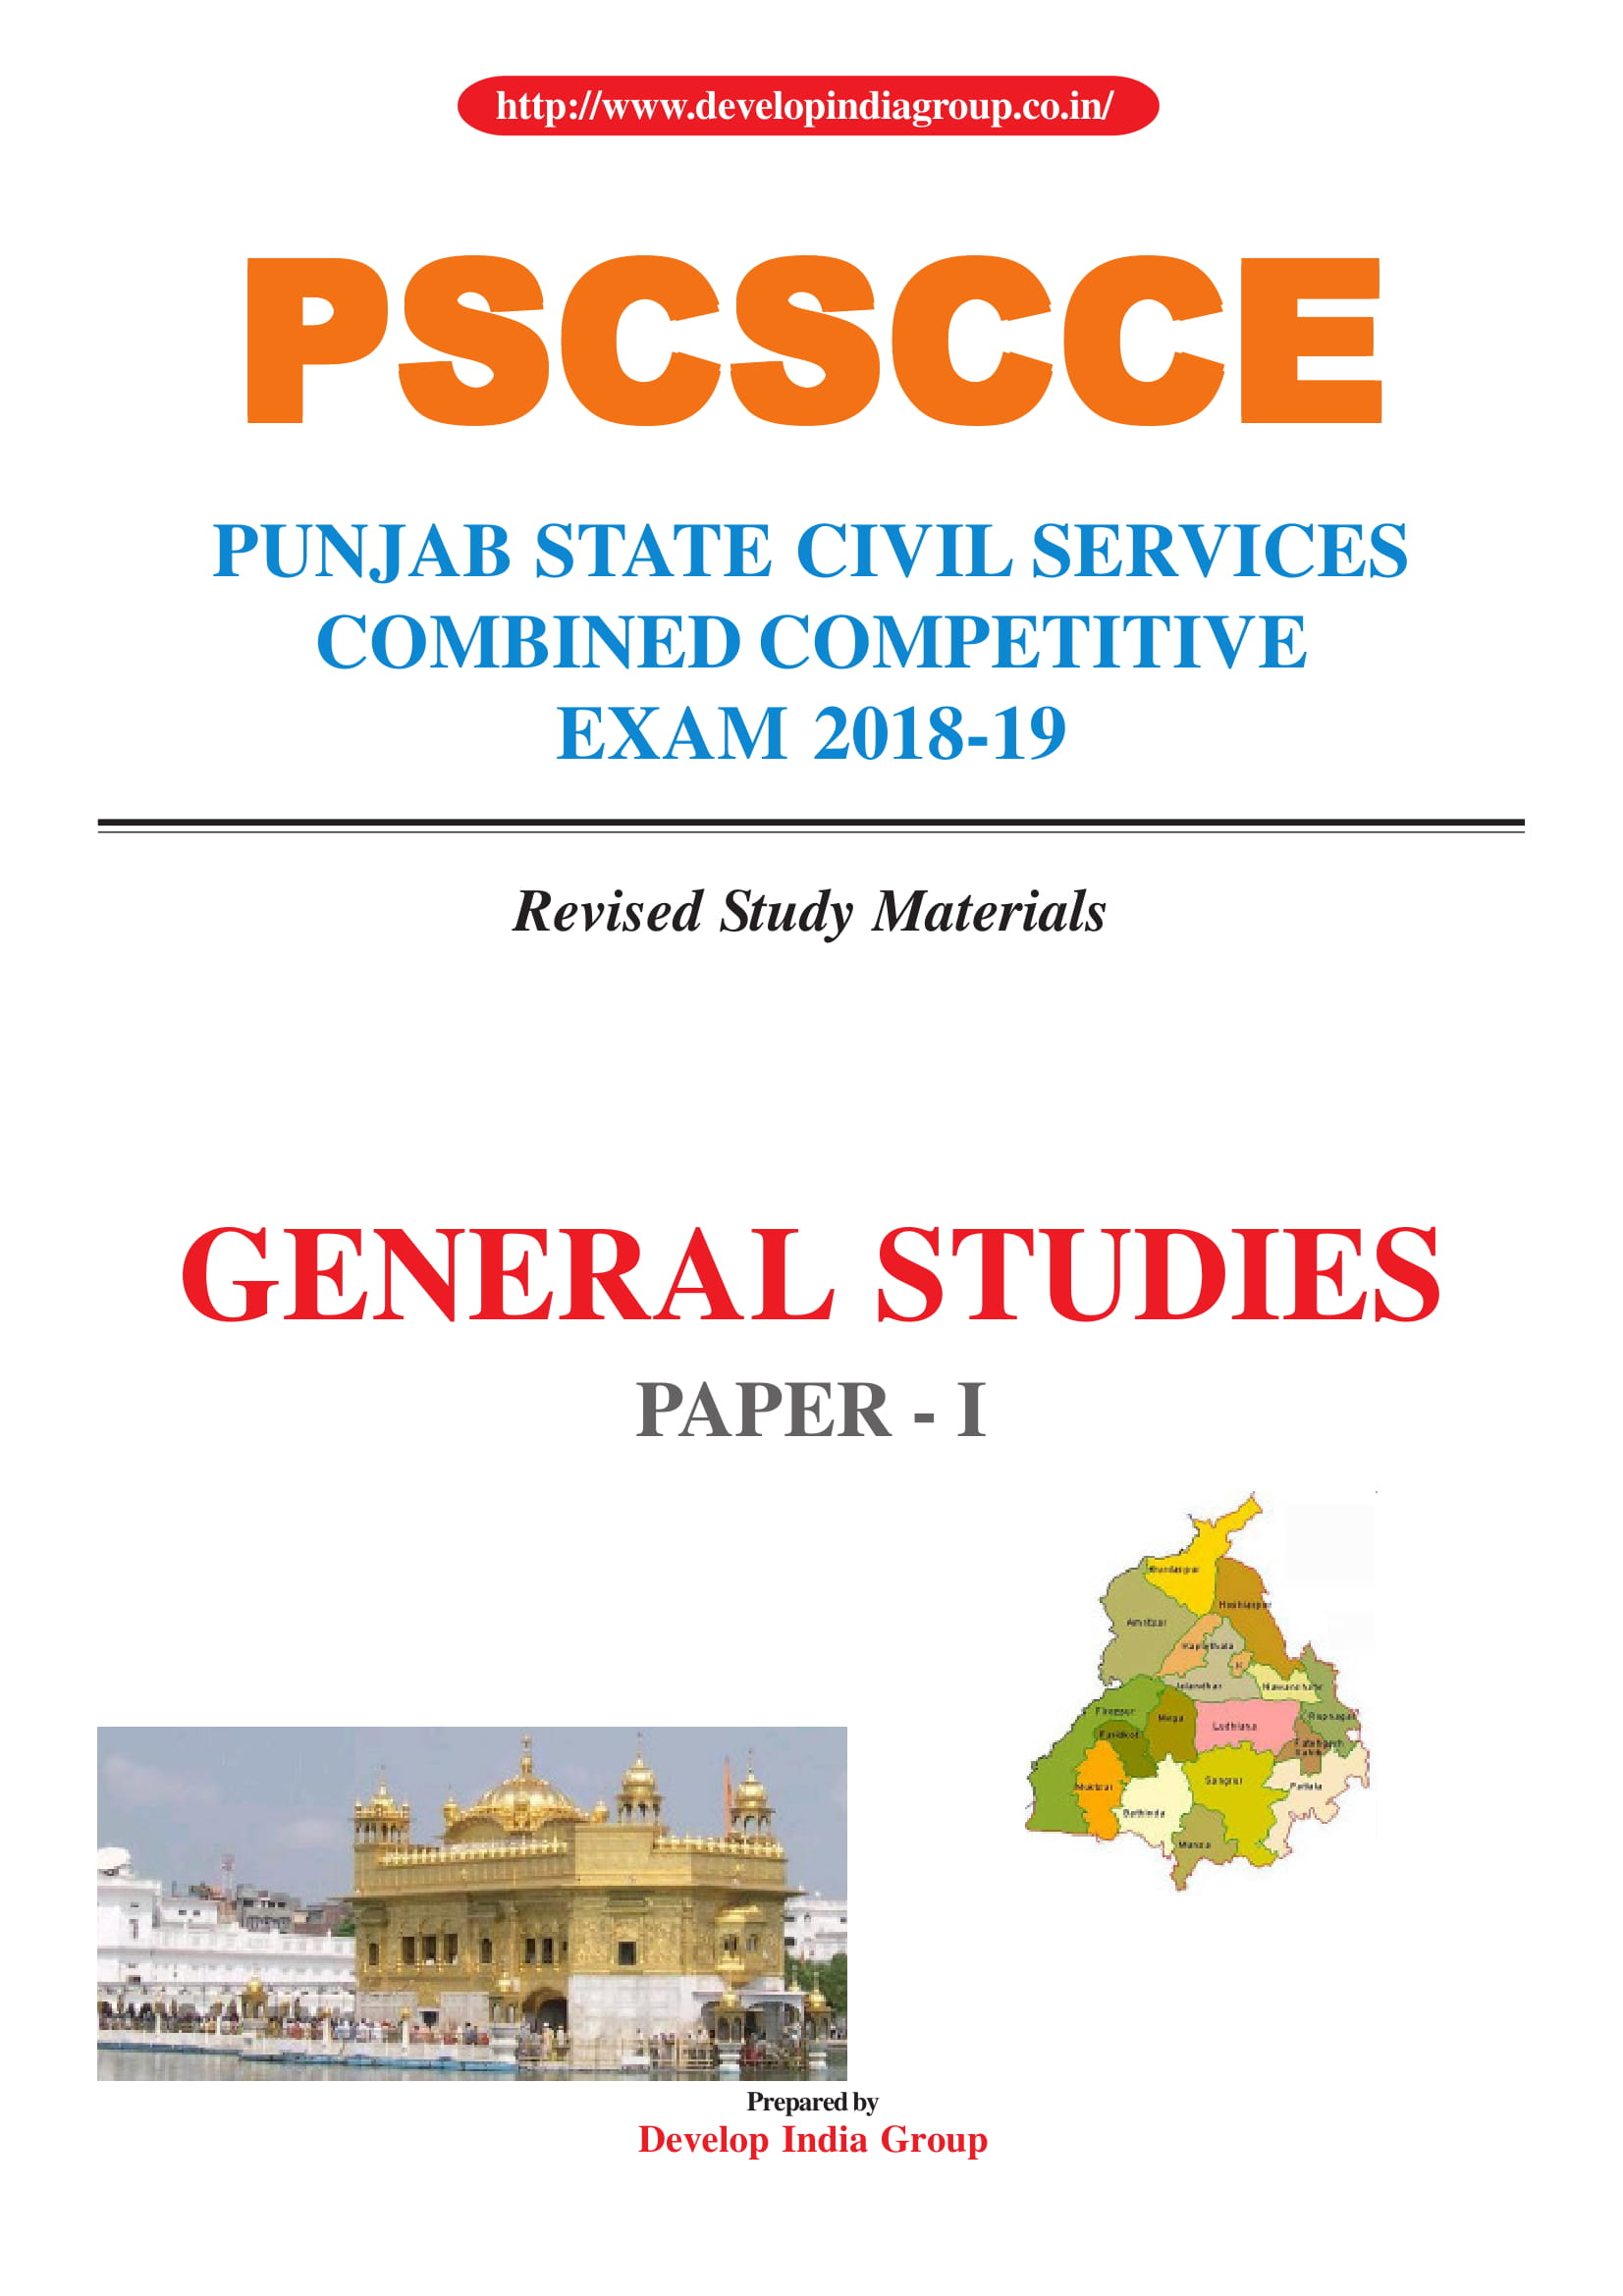 Punjab PSC General Studies paper I cover